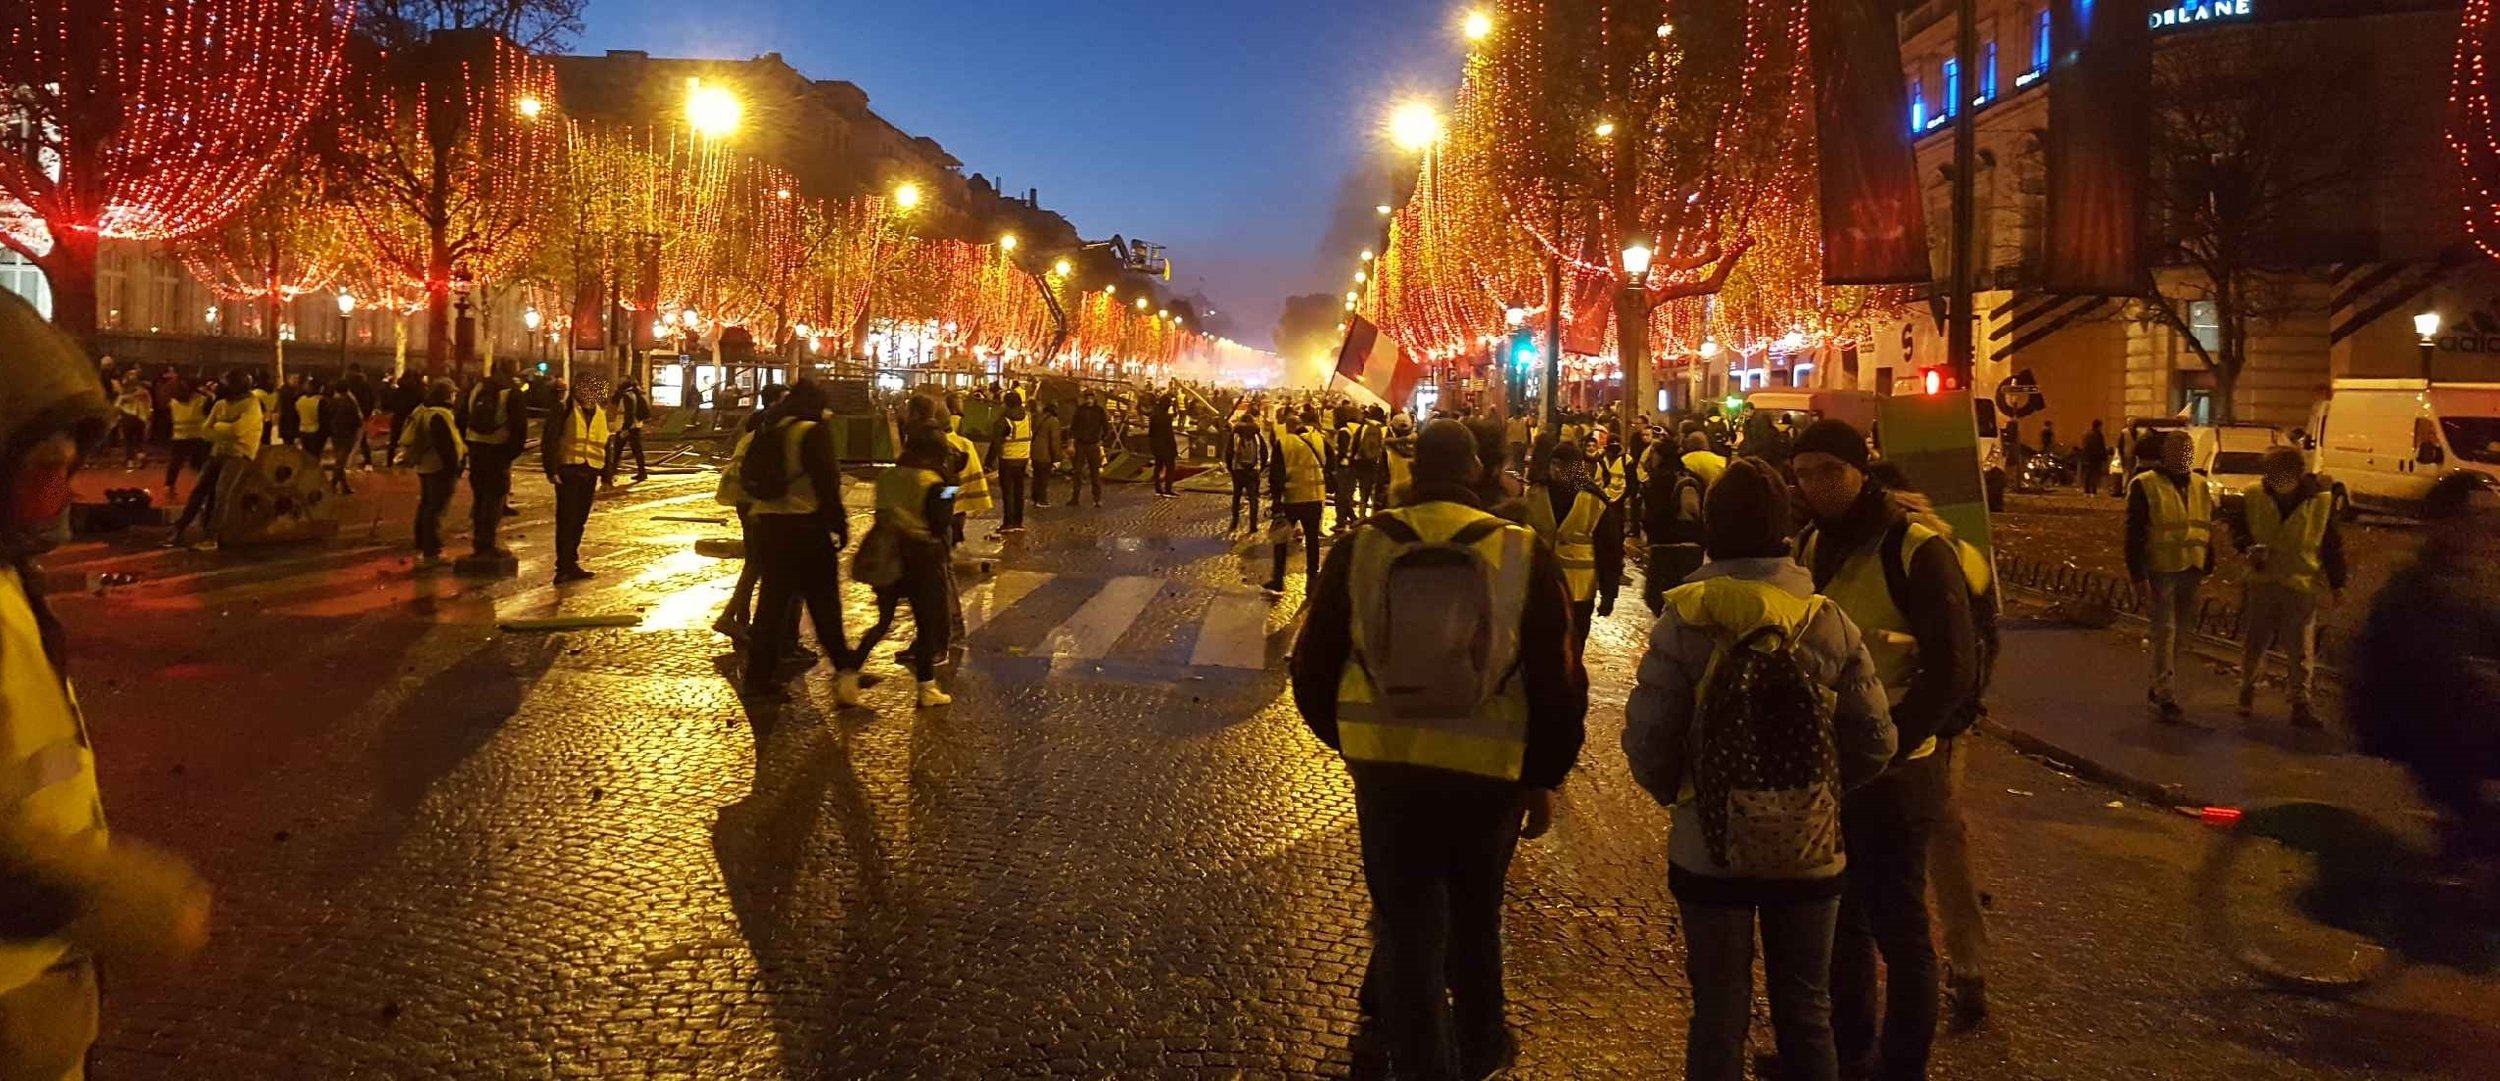 French demonstrators wearing yellow vests and protesting in the streets of Paris ( Image )